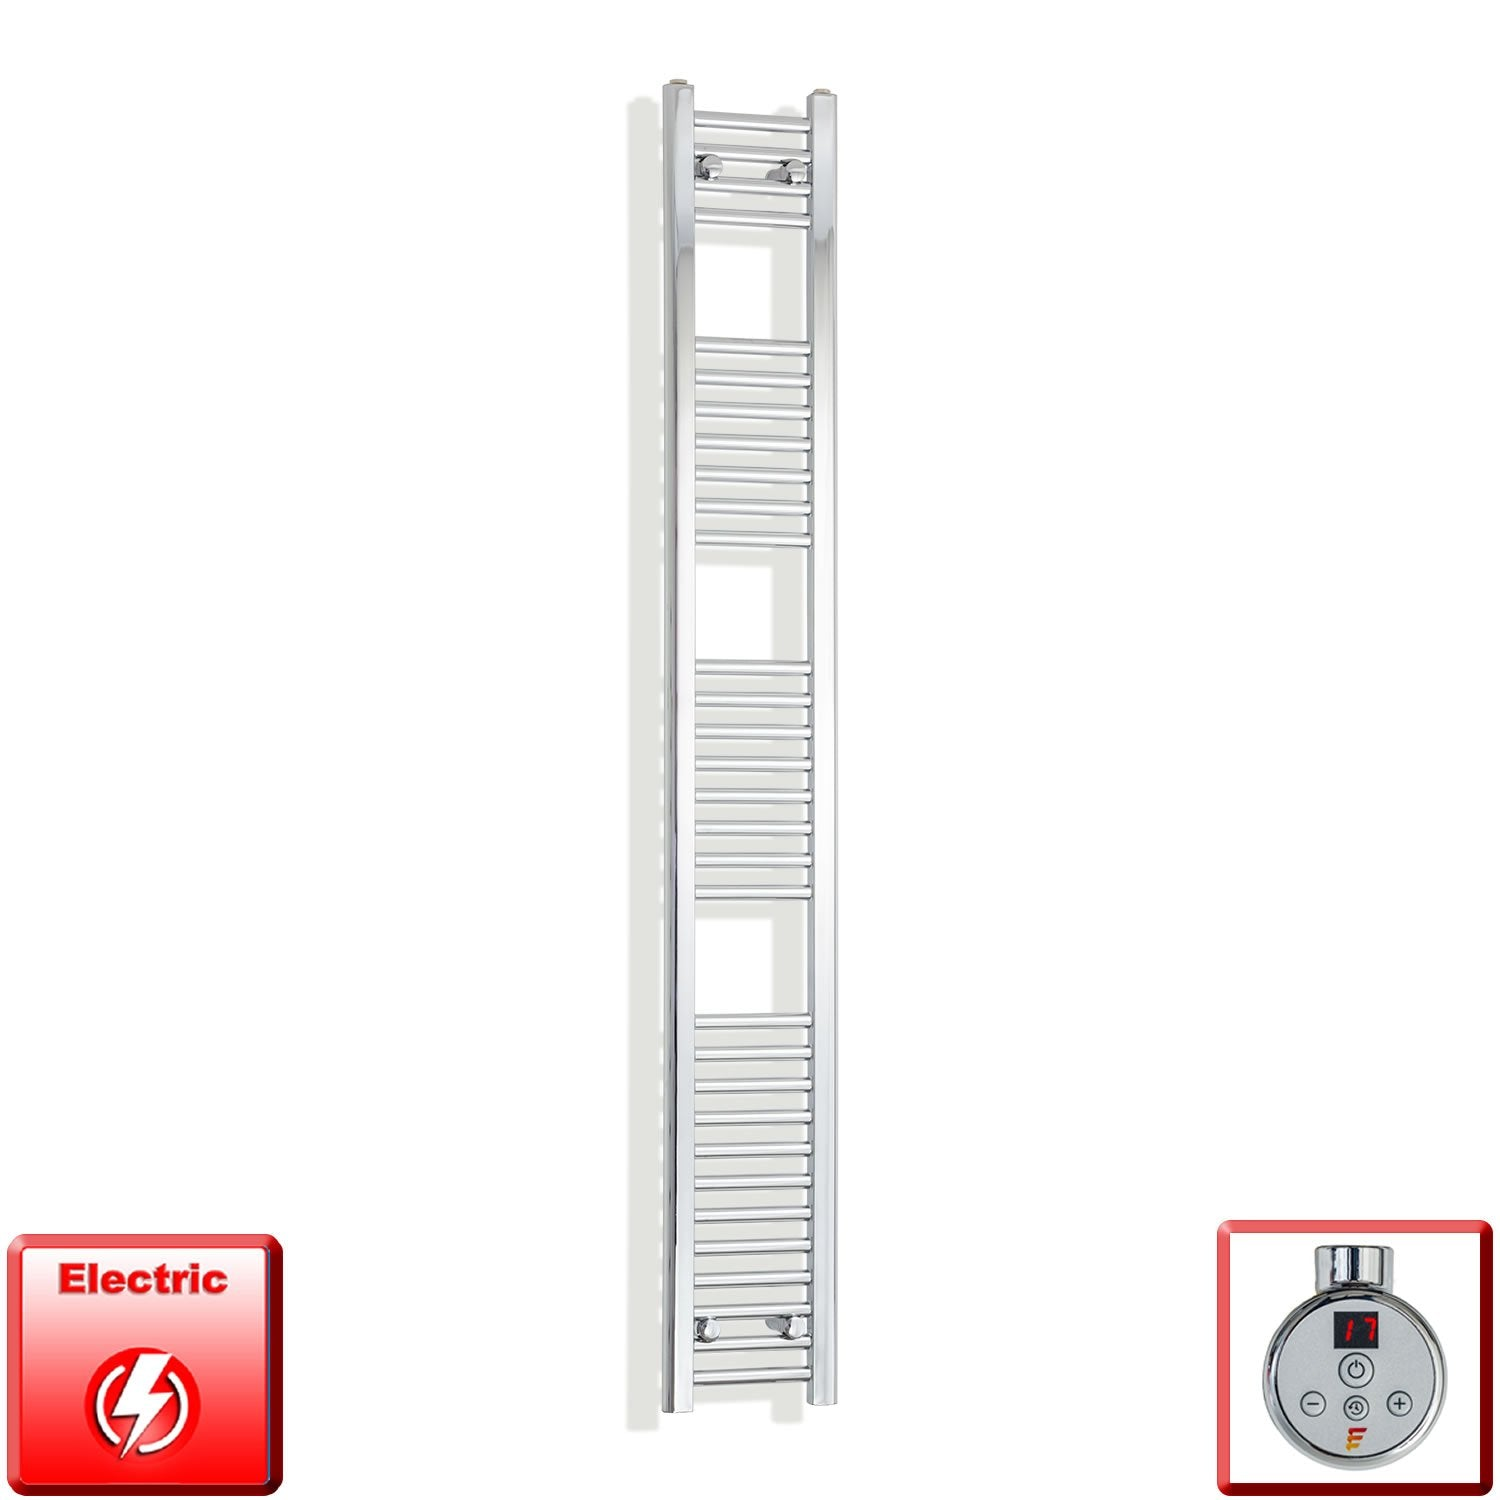 250mm Wide 1800mm High Flat Chrome Pre-Filled Electric Heated Towel Rail Radiator HTR,DGT Thermostatic